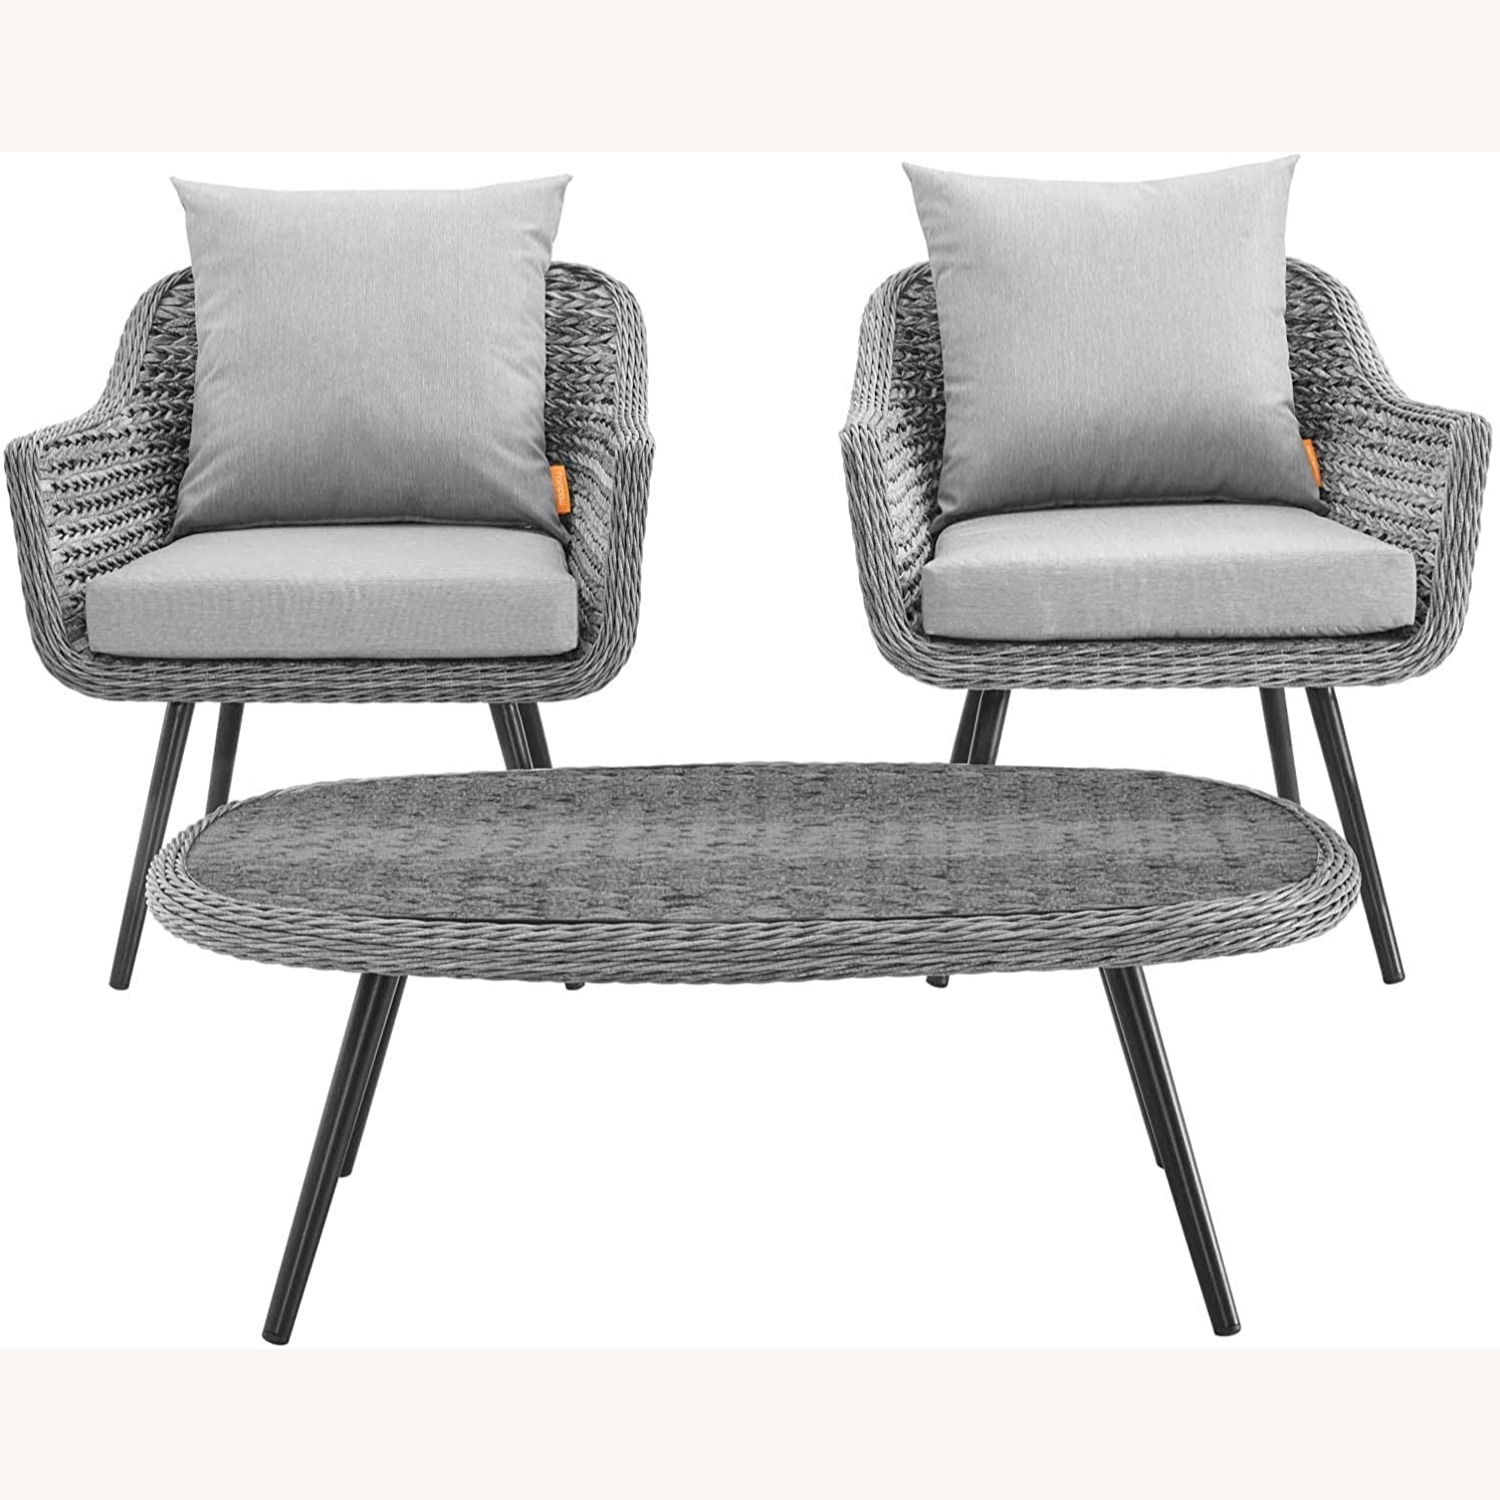 3-Piece Outdoor Sectional In Gray-On-Gray Tone - image-2